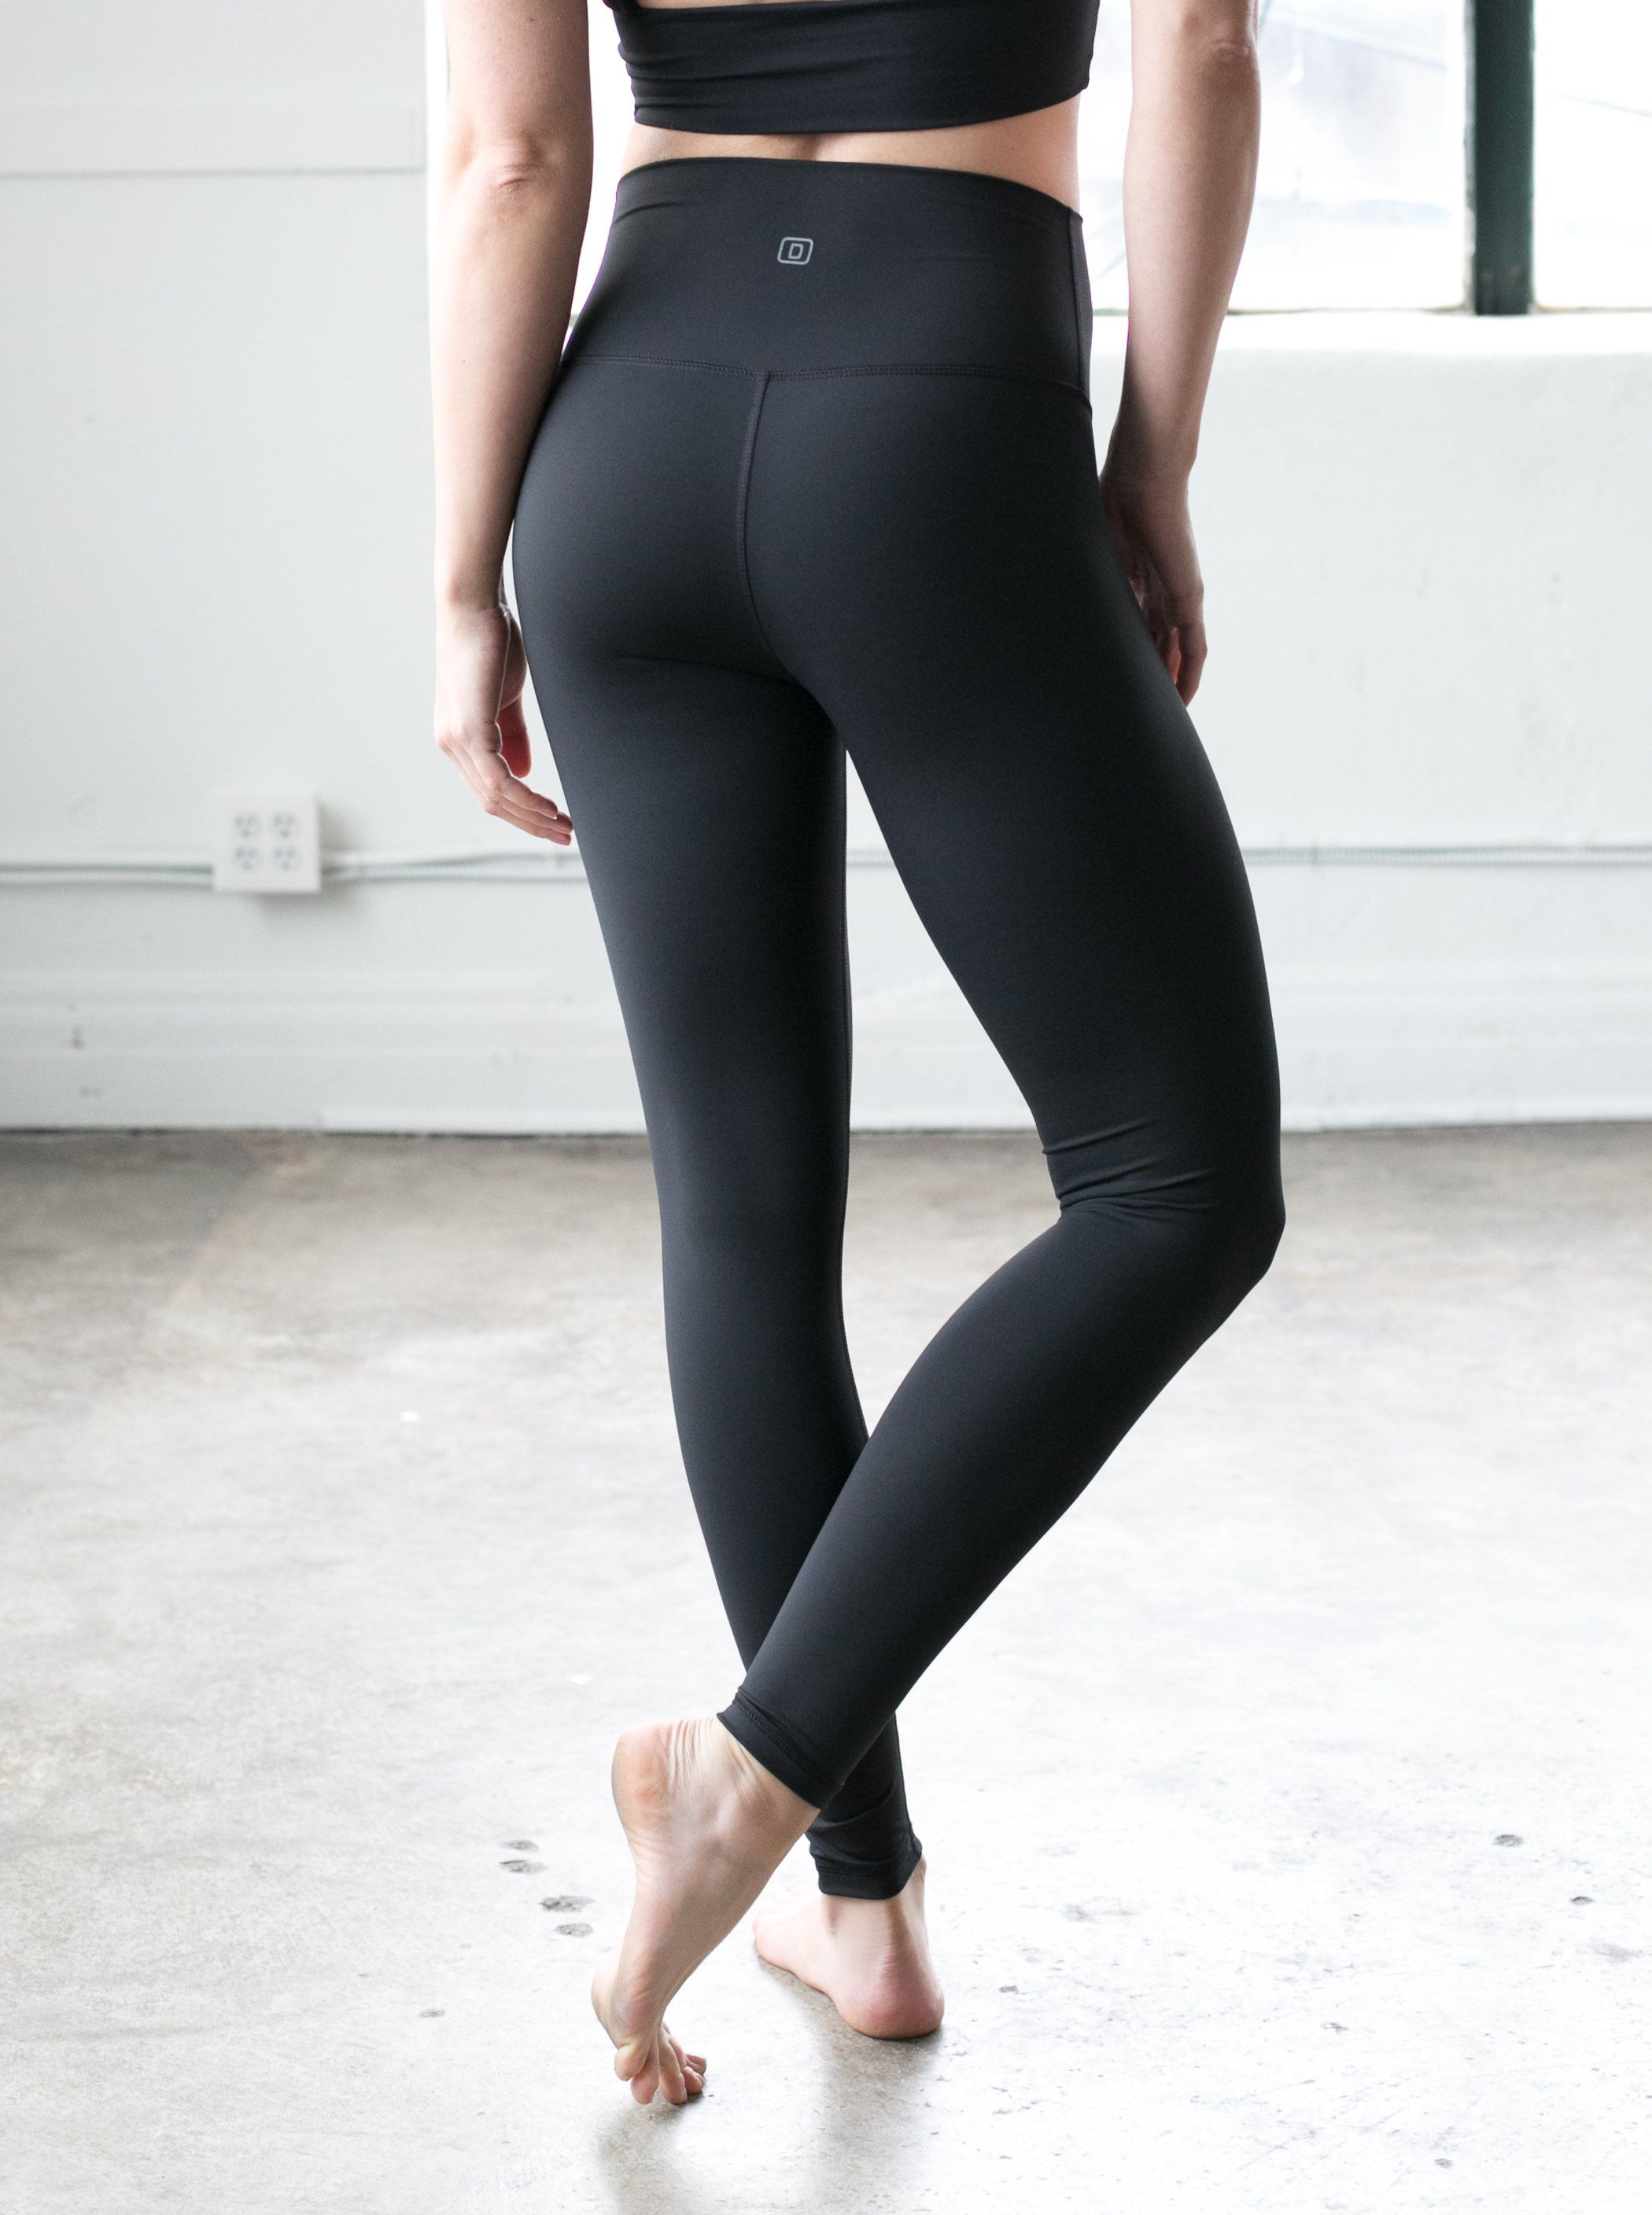 Body Instinct Women/'s Pink and Black  Workout Fitness Leggings Size S M L XL NEW